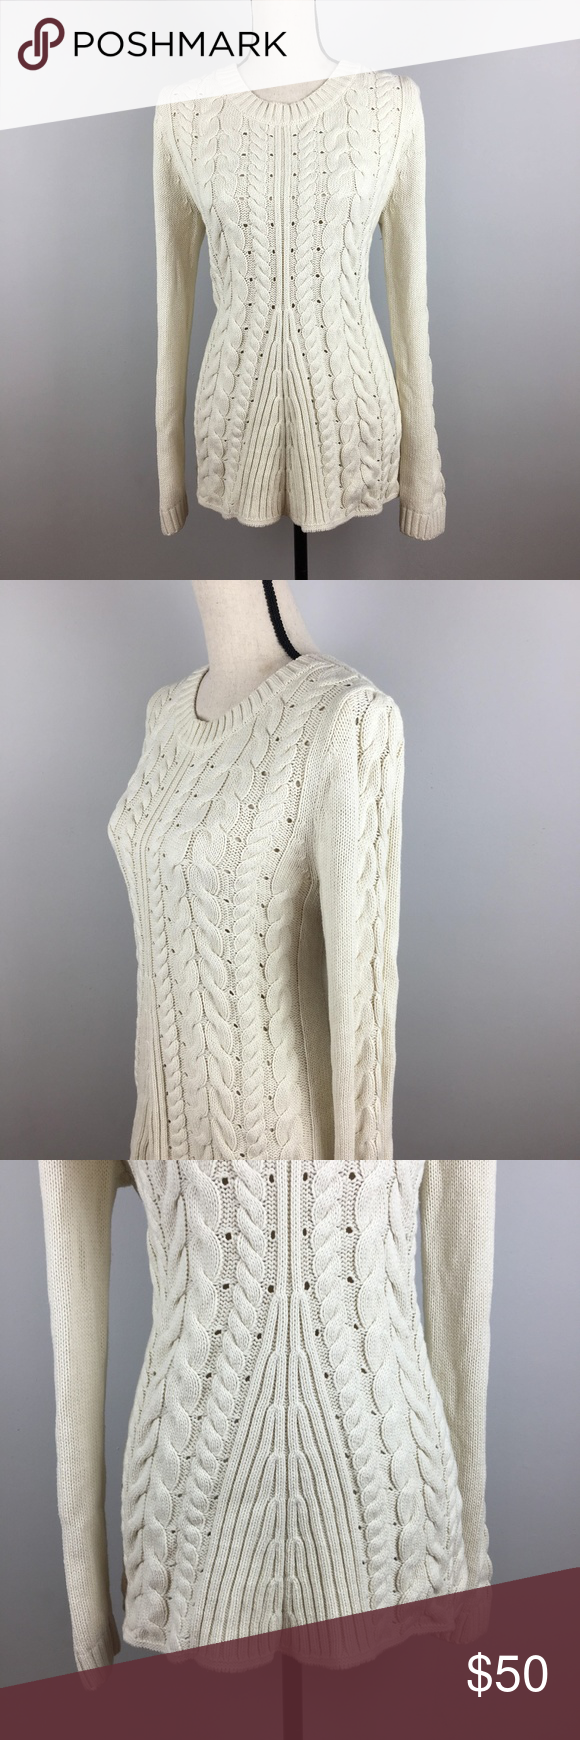 ab58b25c5d cabi style 3157 cream lace up sweater sz m CAbi style 3157 cream lace up  sweater. This sweater is a staple for your Fall wardrobe.